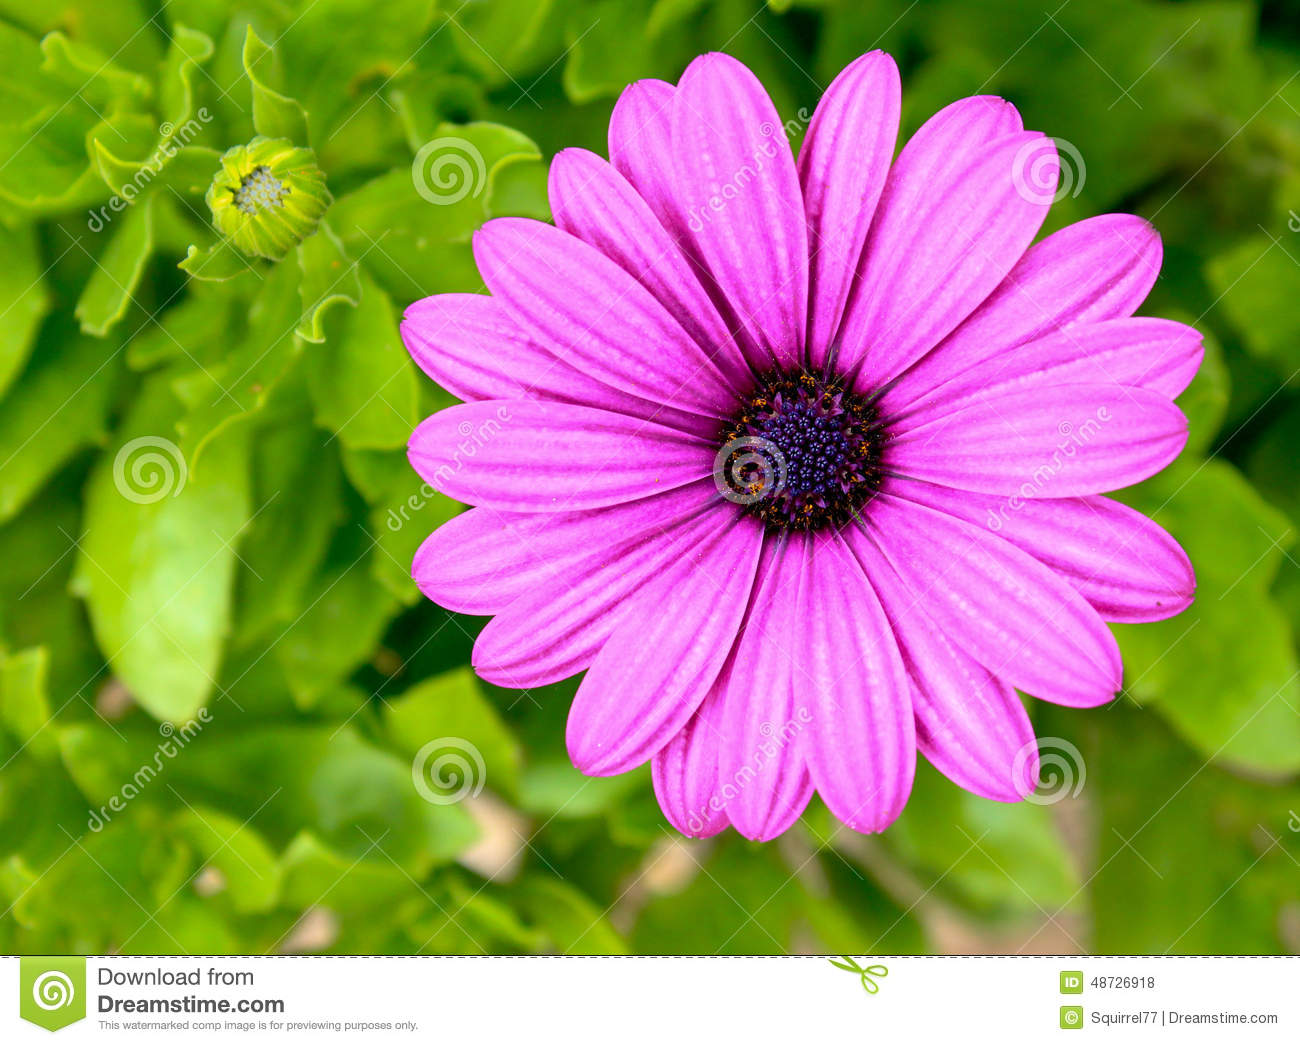 Pink and purple daisy flower against green foliage stock photo pink and purple daisy flower against green foliage izmirmasajfo